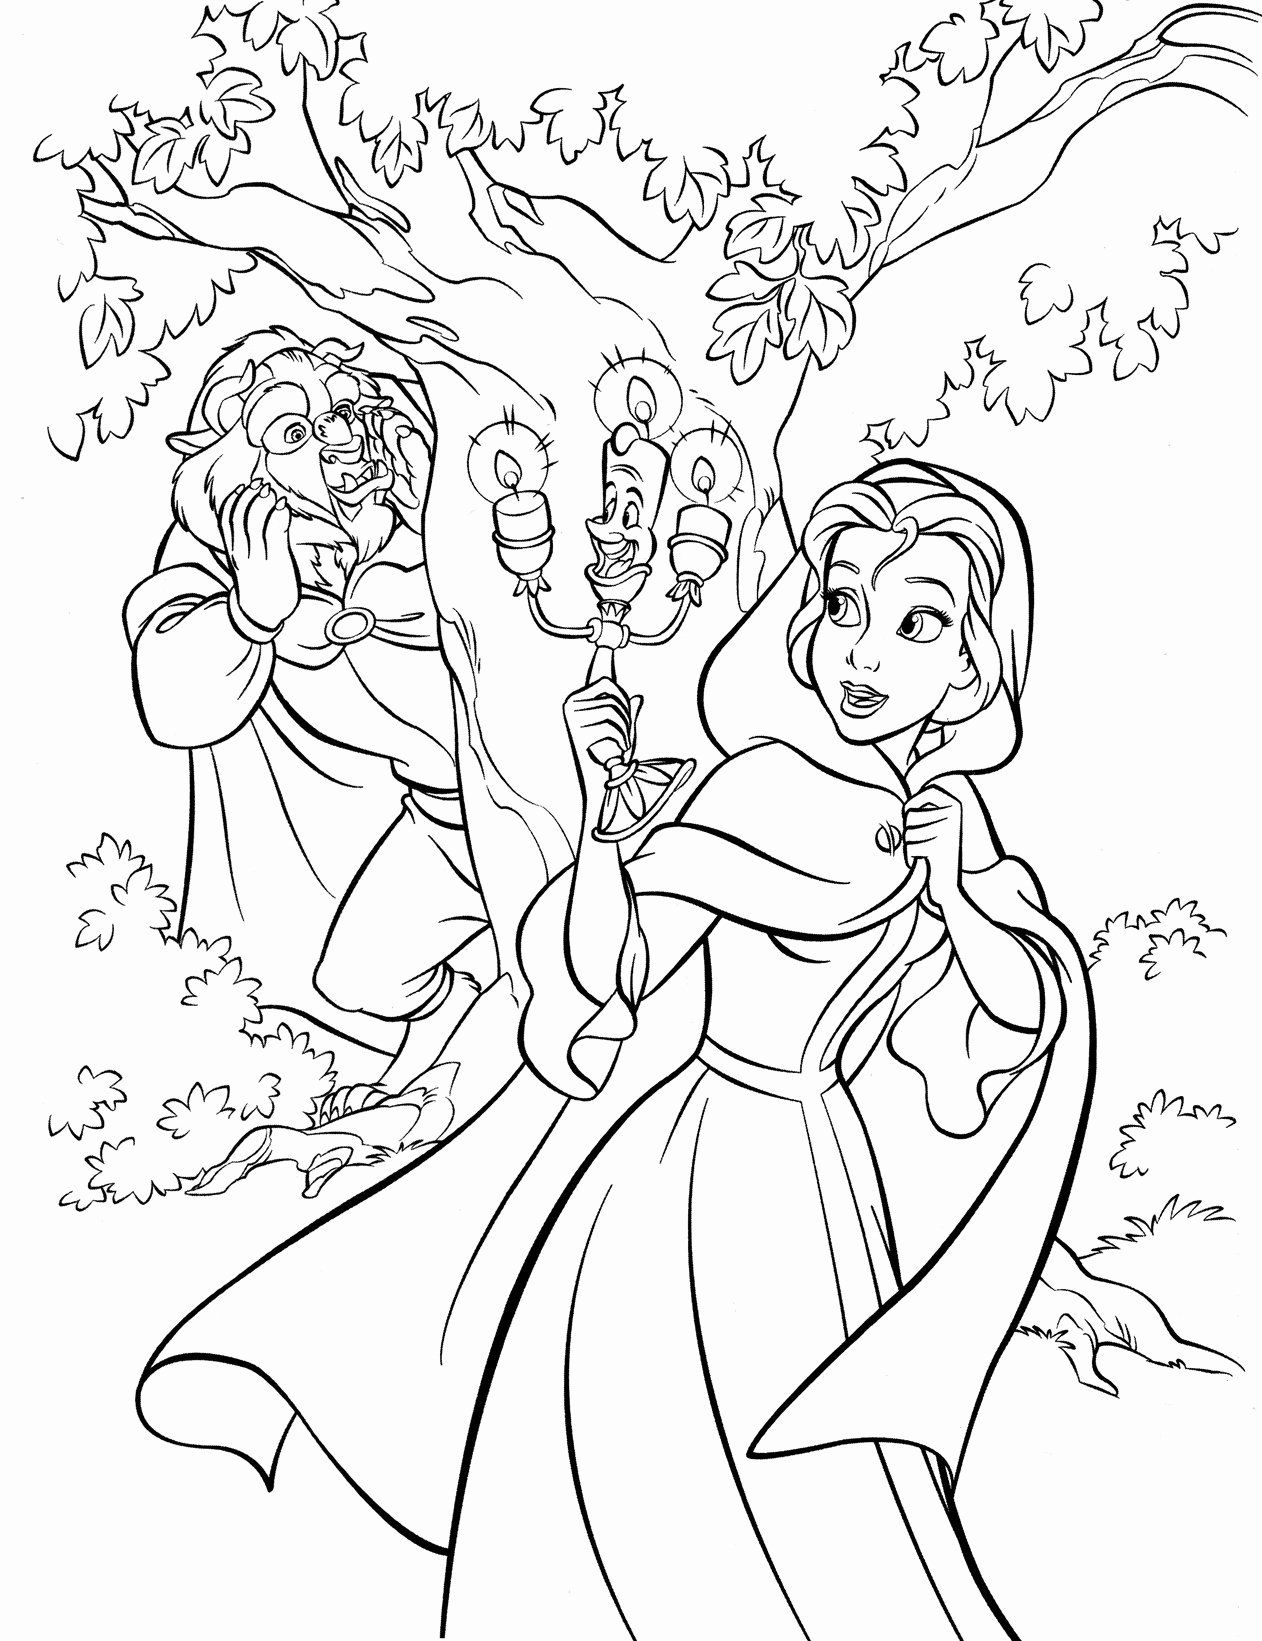 Beauty And The Beast Coloring Book Beautiful Walt Disney Cute Kawaii Resources Belle Coloring Pages Disney Coloring Pages Princess Coloring Pages